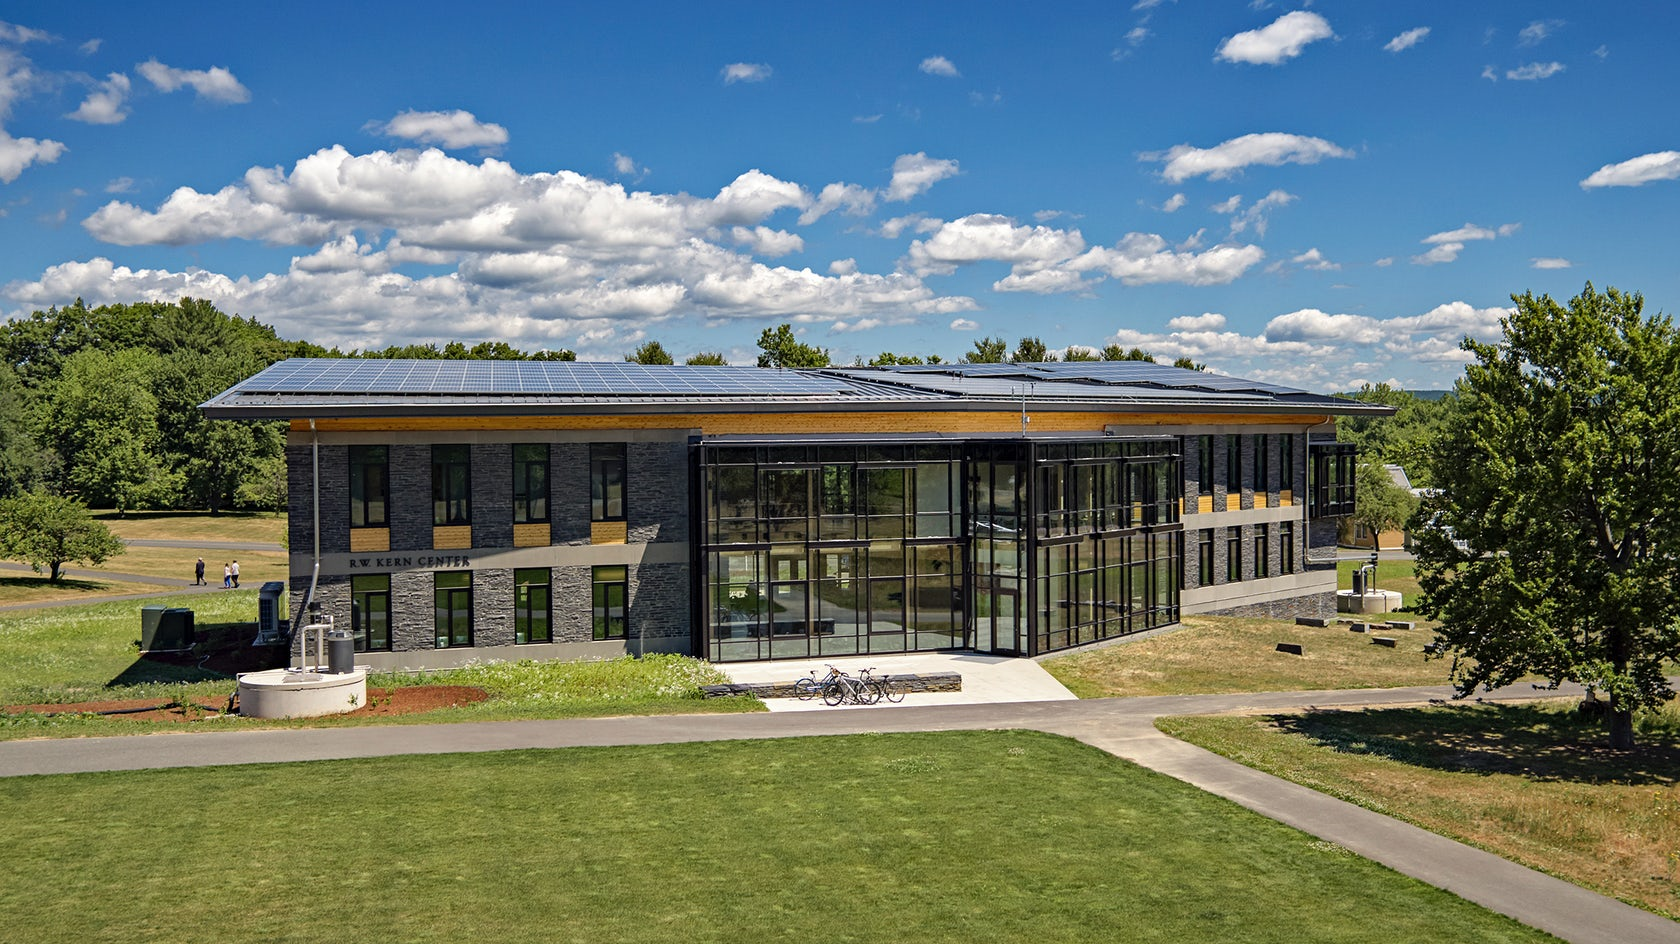 R w kern center architizer for College street motors amherst ma